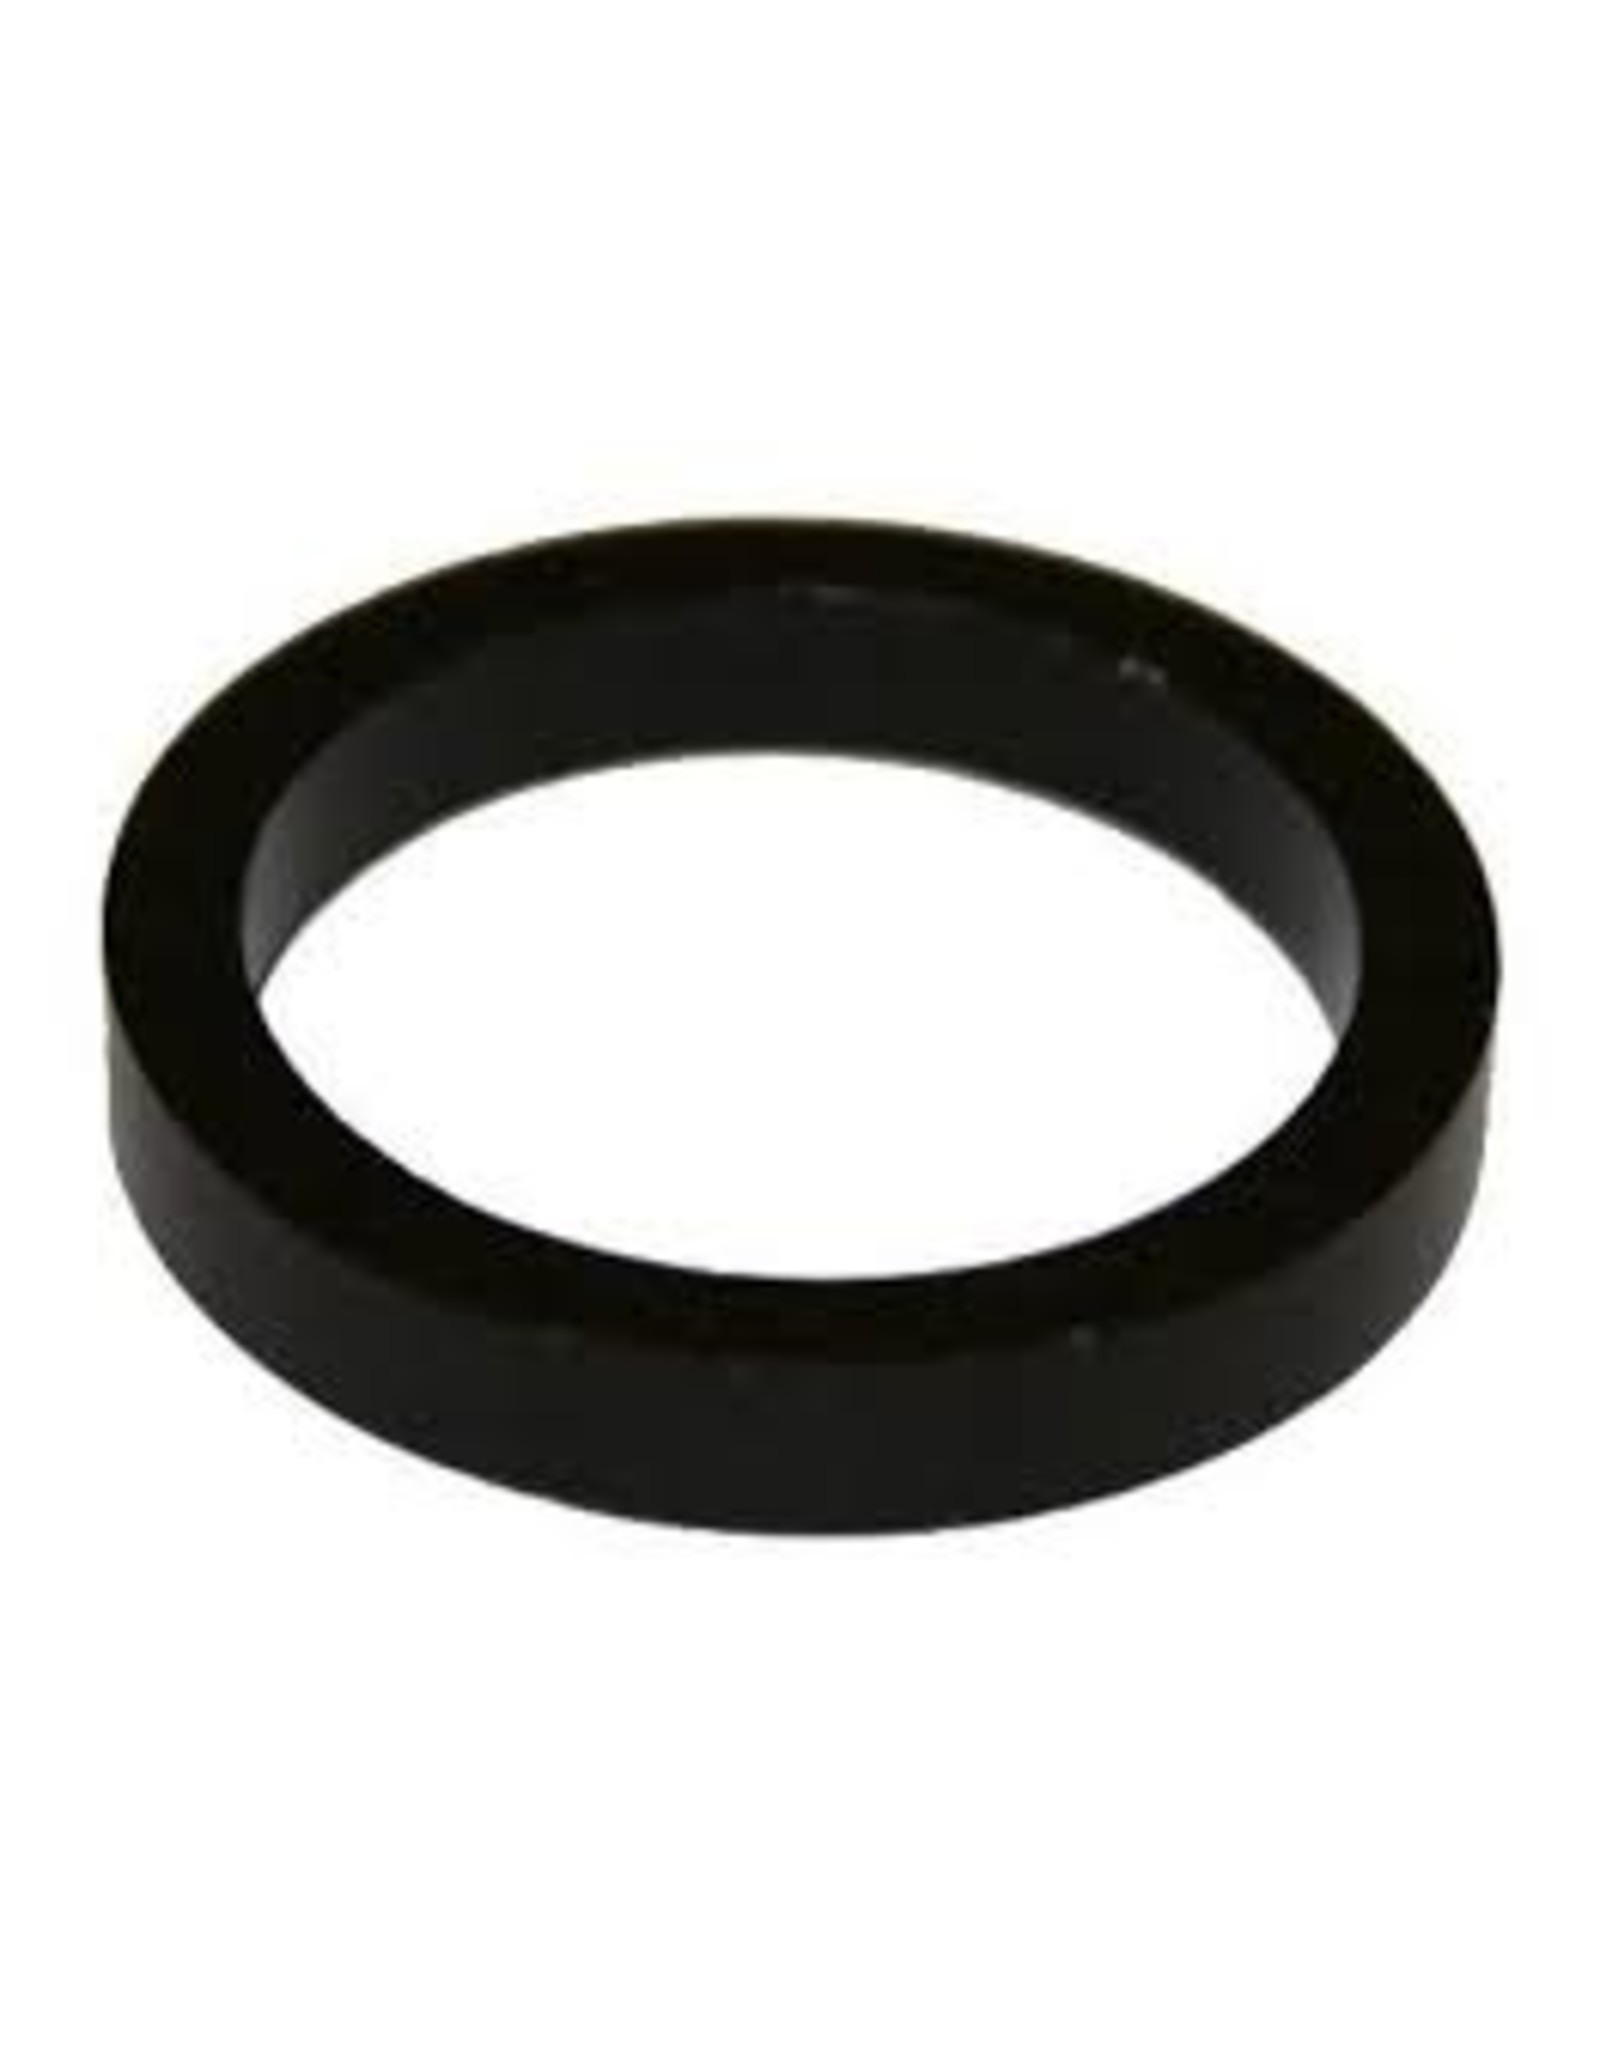 ECONO Non-Keyed Headset Spacers 28.6 x 2mm - Black